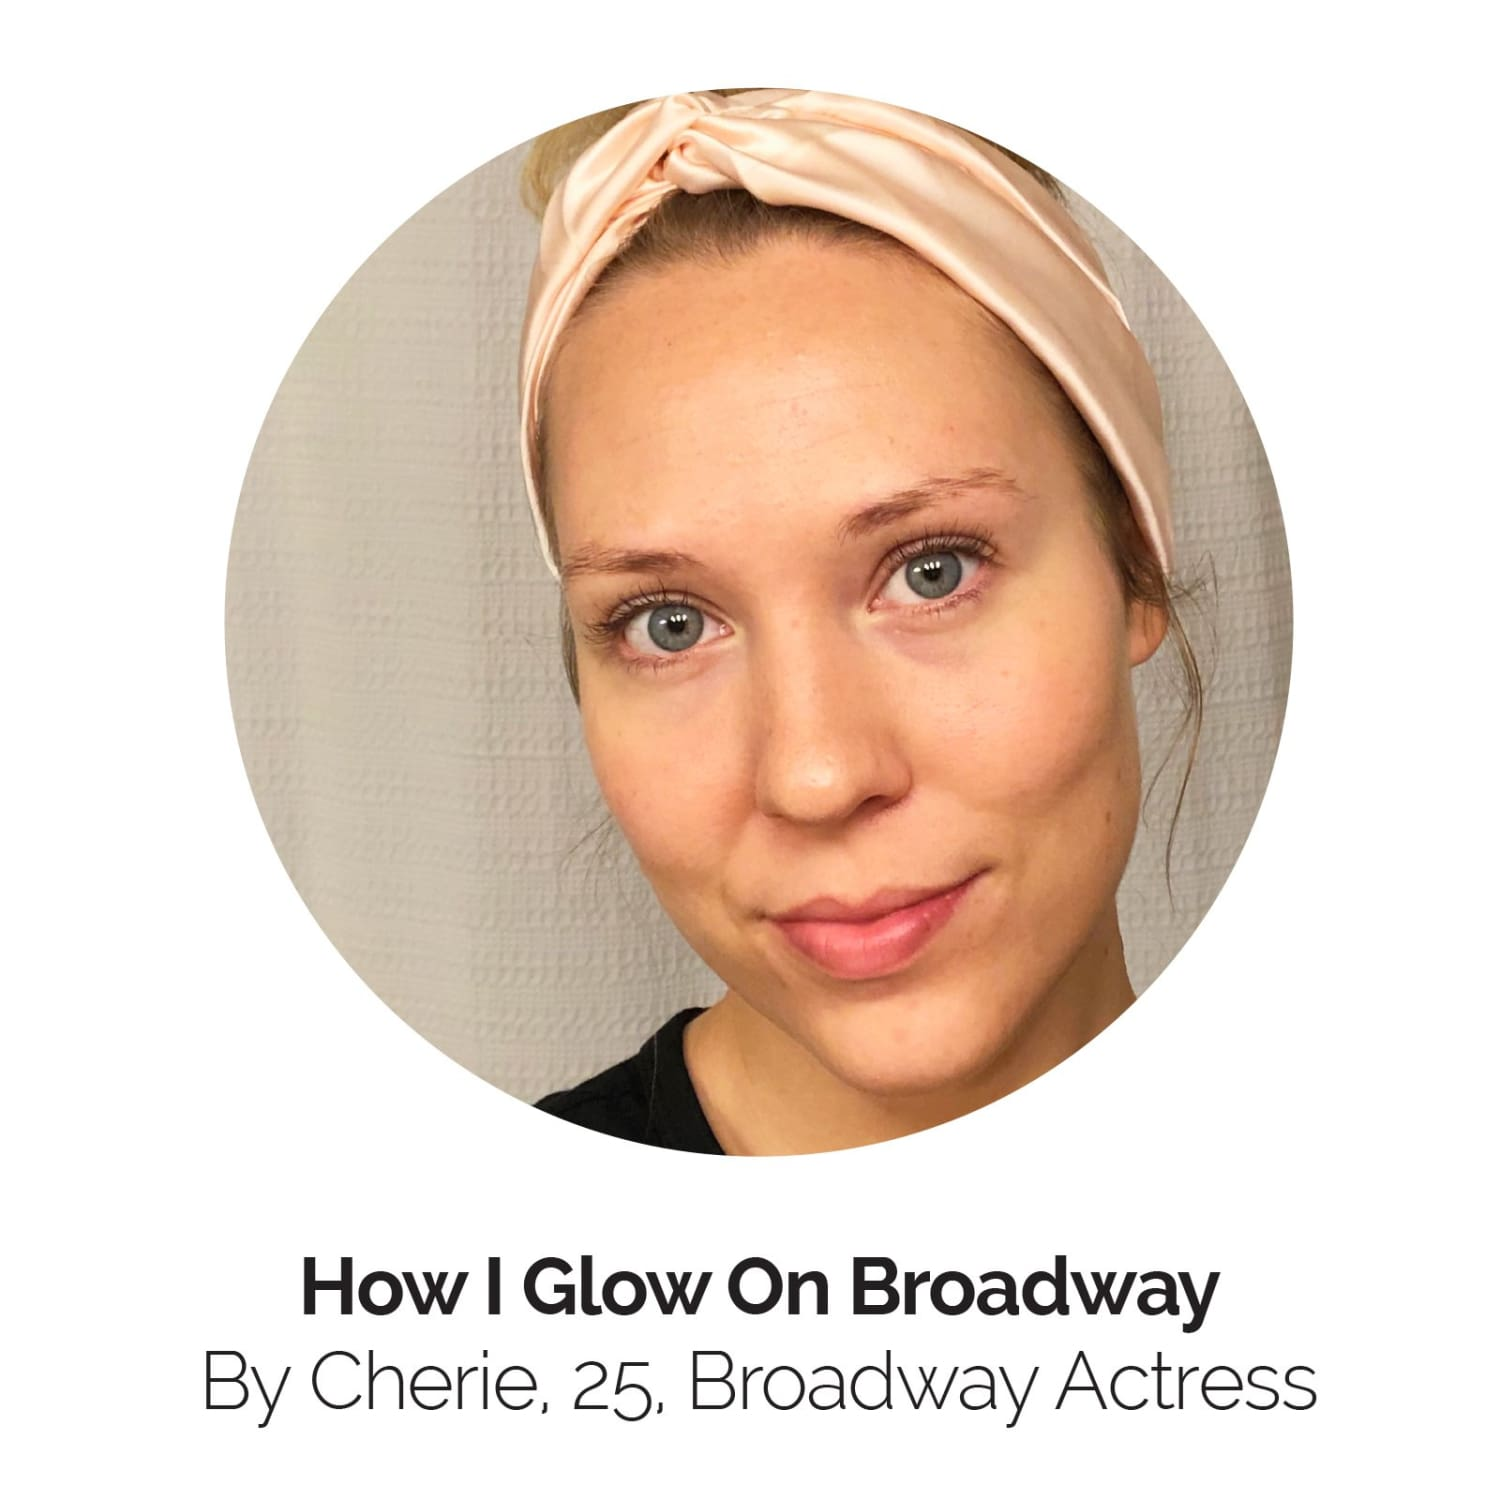 REAL PEOPLE. REAL ROUTINES. REAL GLOW.